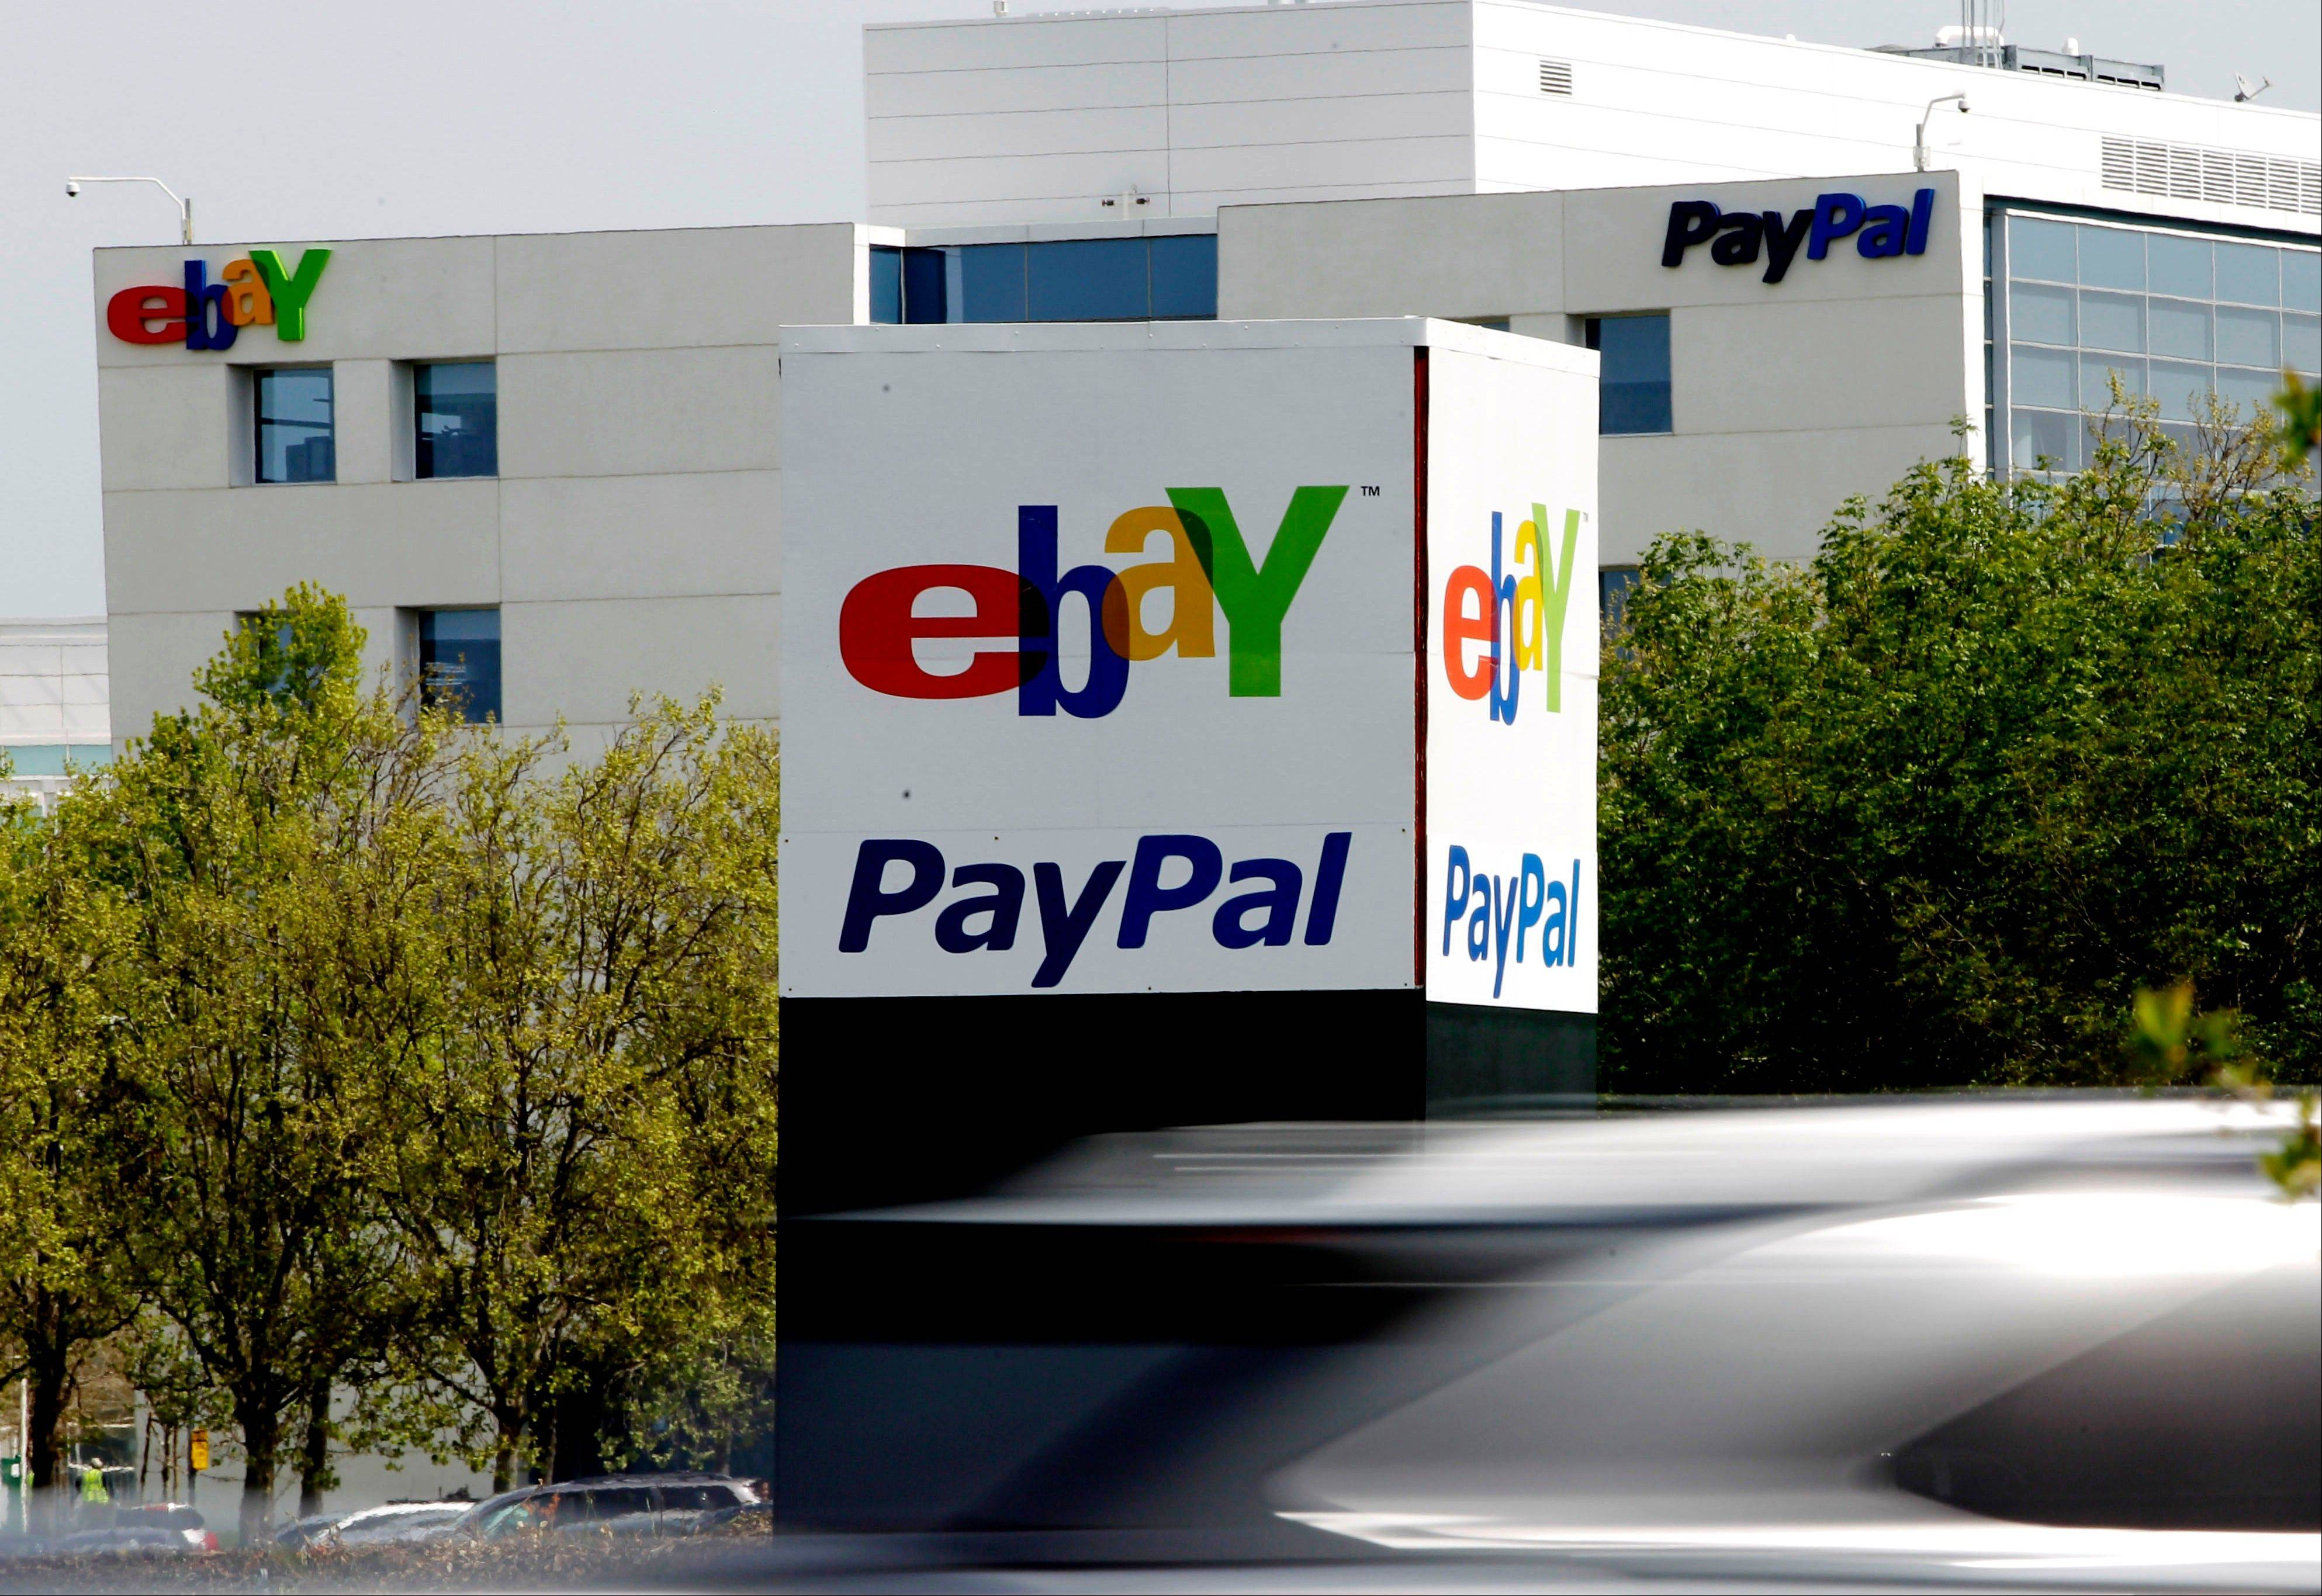 EBay Inc., the world's largest Internet marketplace, gained in German trading after reporting second-quarter sales and profit that beat analysts' estimates as more U.S. consumers shopped for new items on the site. Chief Executive Officer John Donahoe has increased spending on advertising and new technology to expand beyond EBay's auction roots and let shoppers buy more items in instant sales.